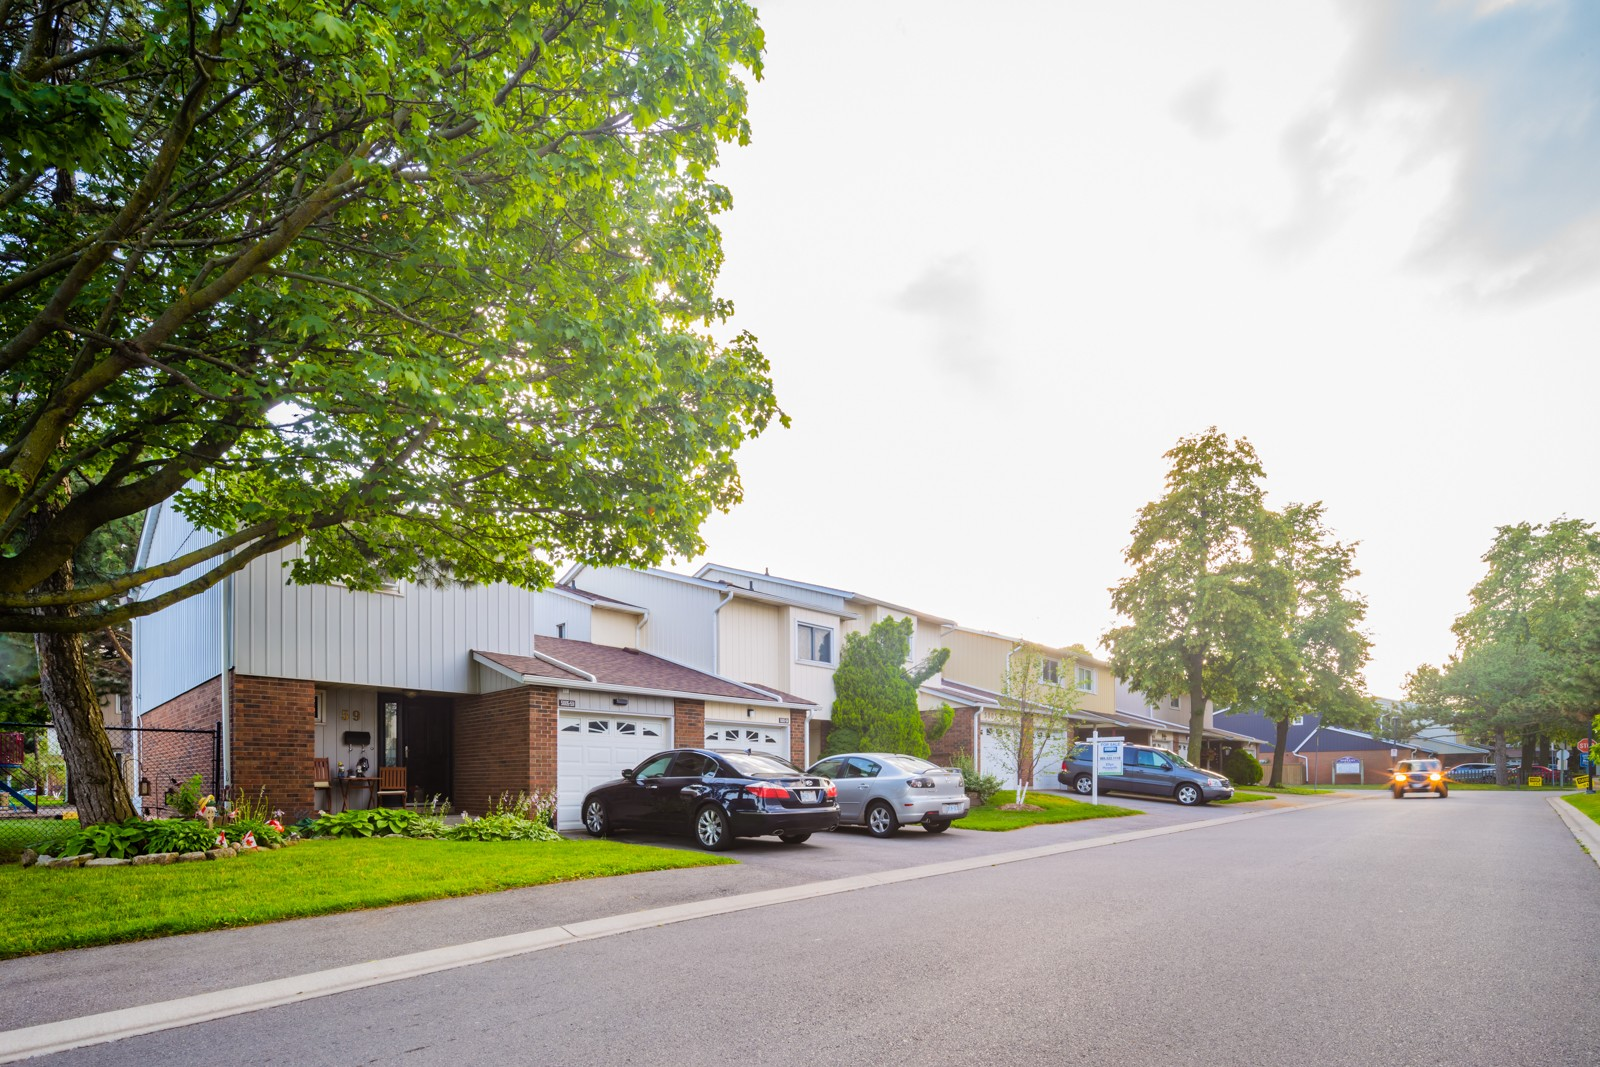 5021 Pinedale Ave Townhouses at 5009 Pinedale Ave, Burlington 0